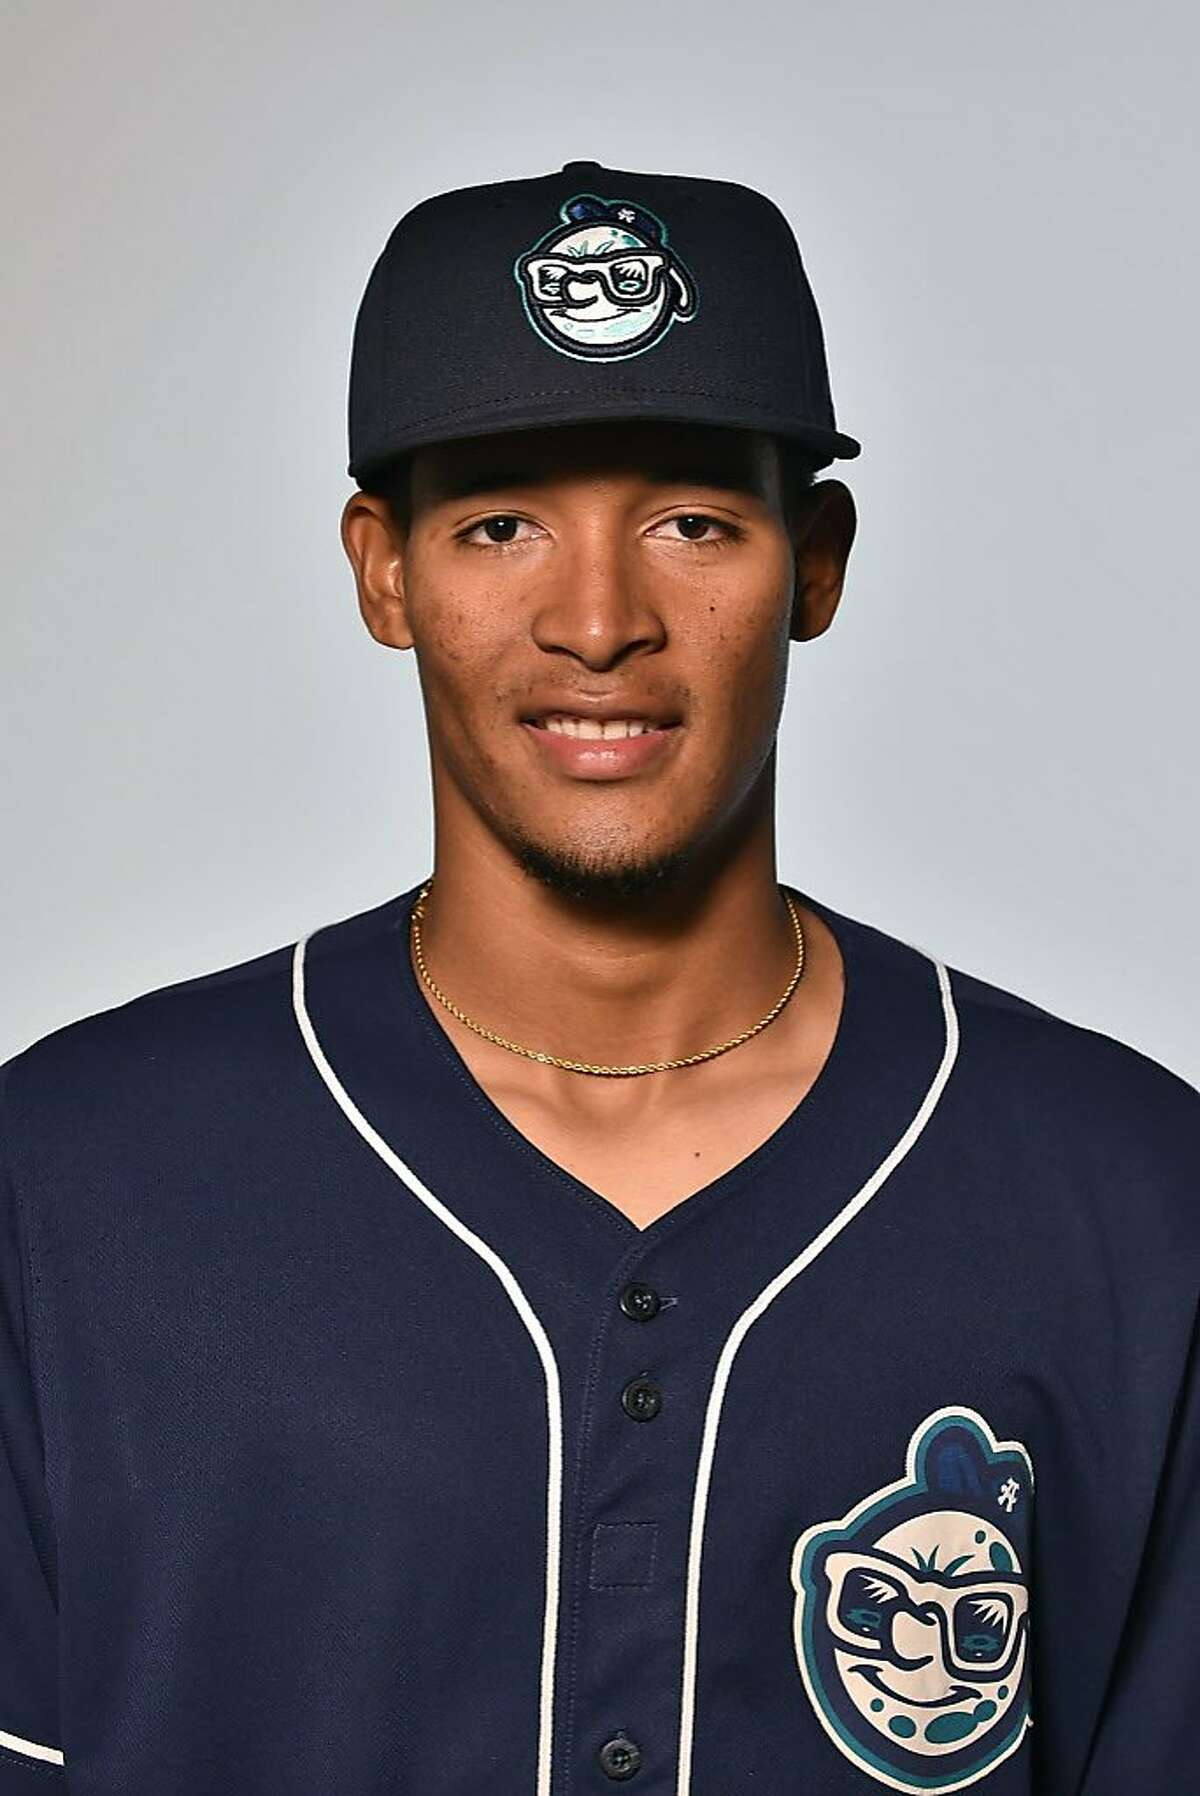 Julian Fernandez played in 2017 for the Asheville Tourists, the Colorado Rockies Class-A affiliate. He was selected by the Giants in the Rule 5 draft.